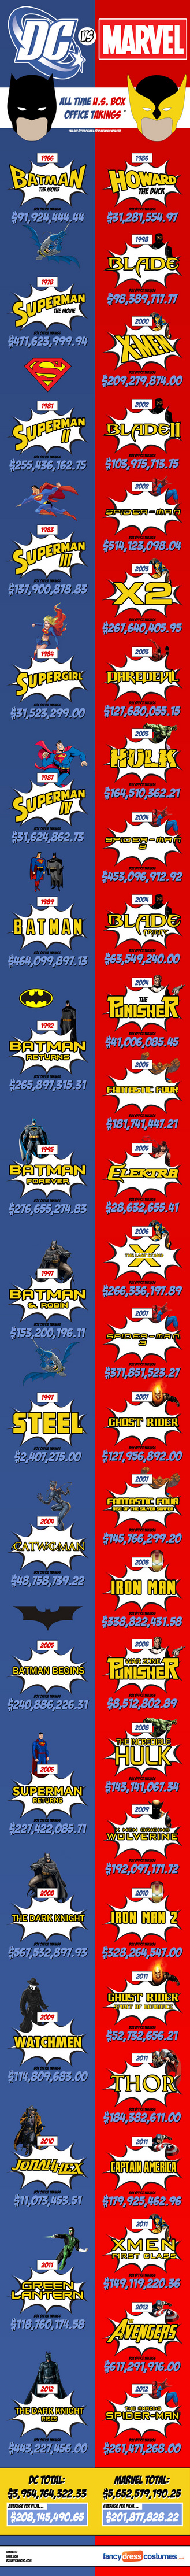 MarvelVsDCboxofficeinfographic.jpeg